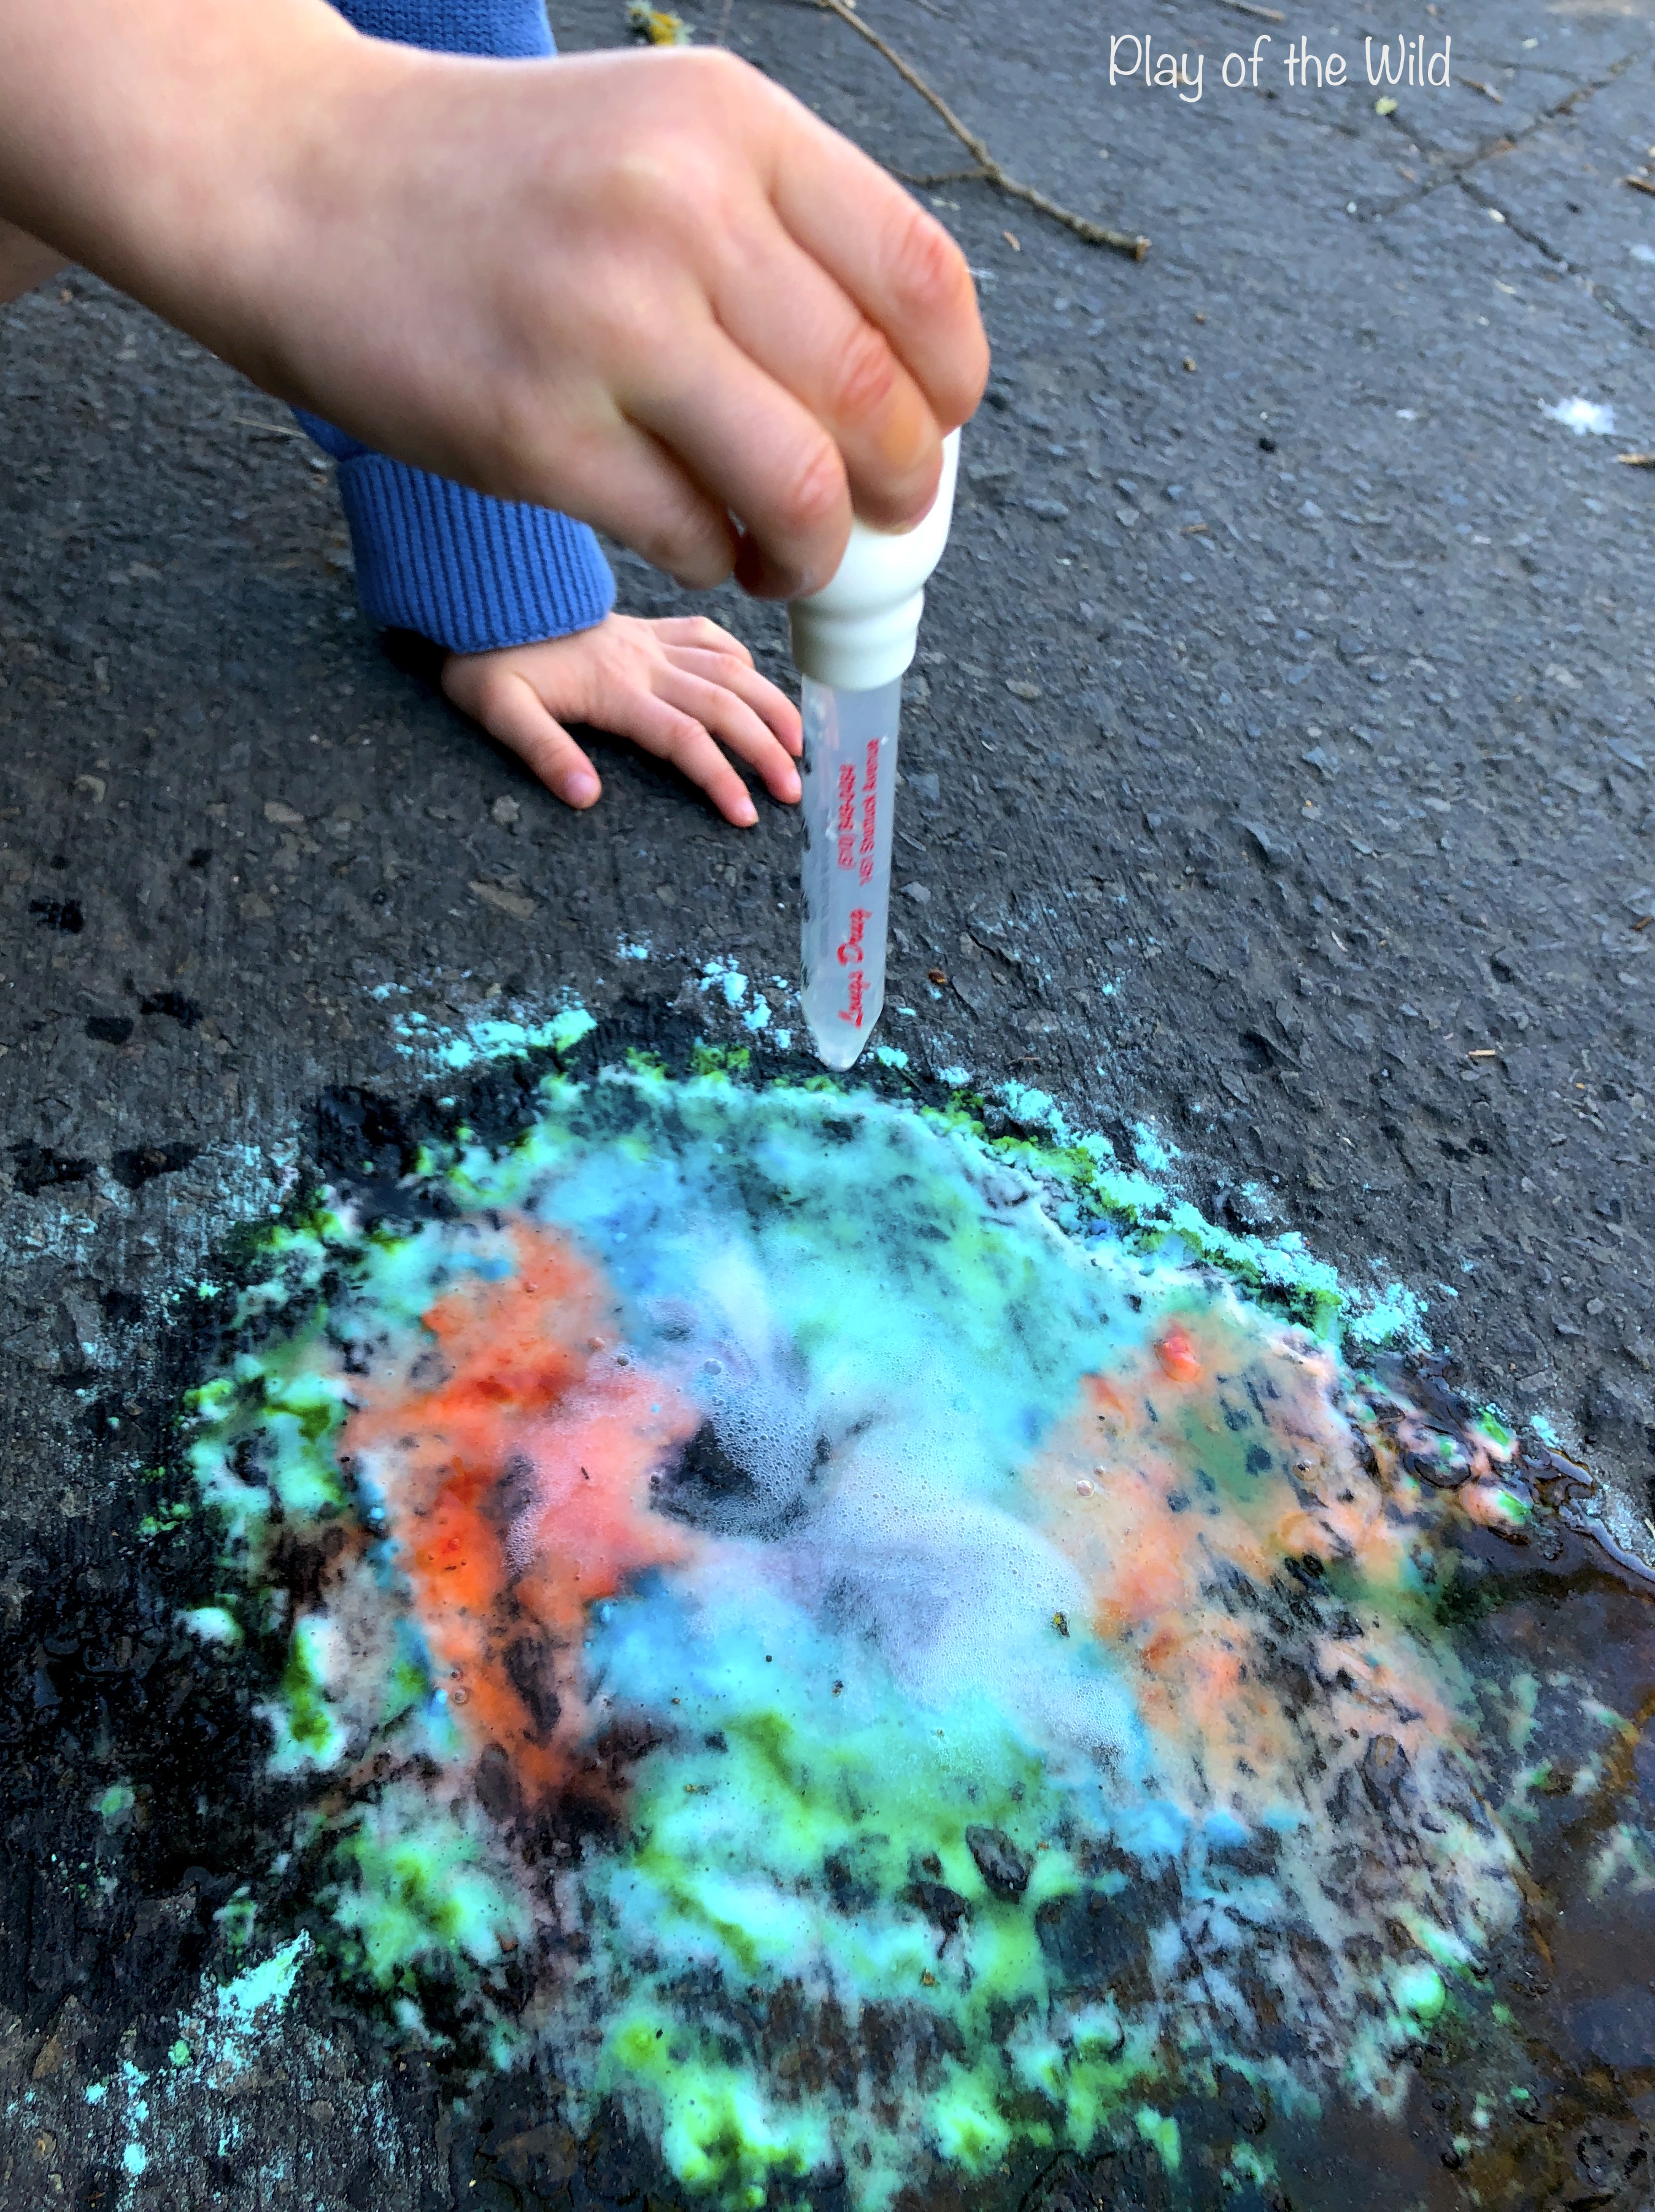 Colorful baking soda and vinegar experiment for kids.